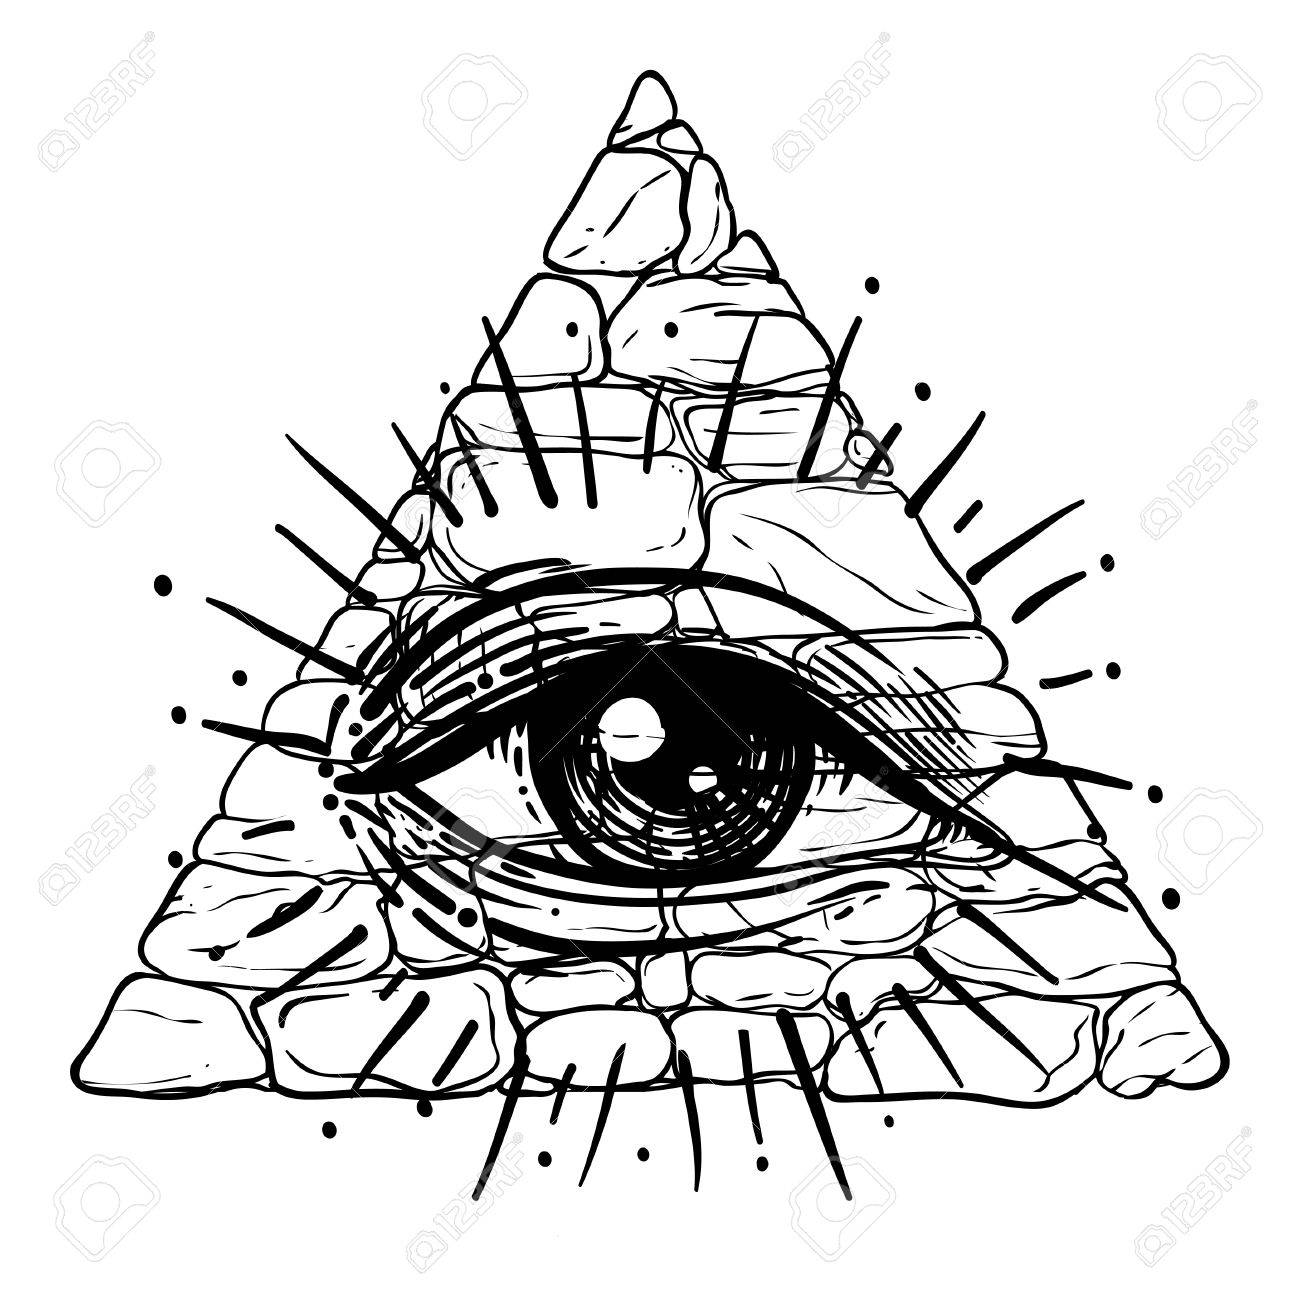 Masonic Drawing at GetDrawings com | Free for personal use